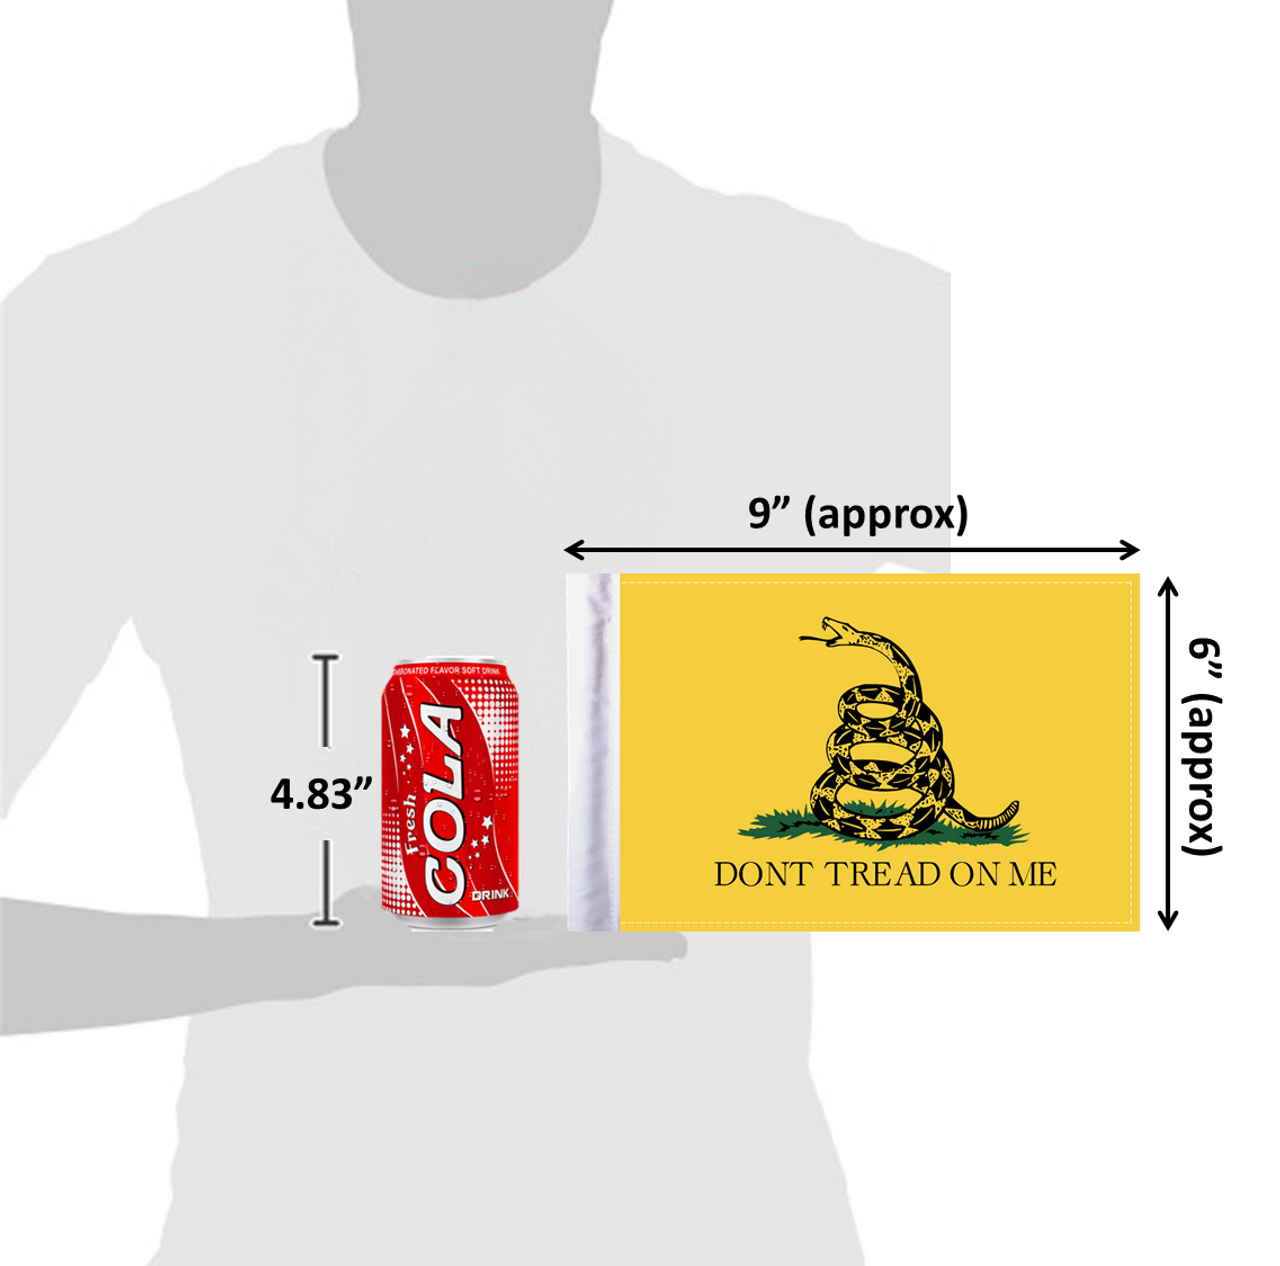 6x9 Gadsden Don't Tread on Me flag (size comparison view)